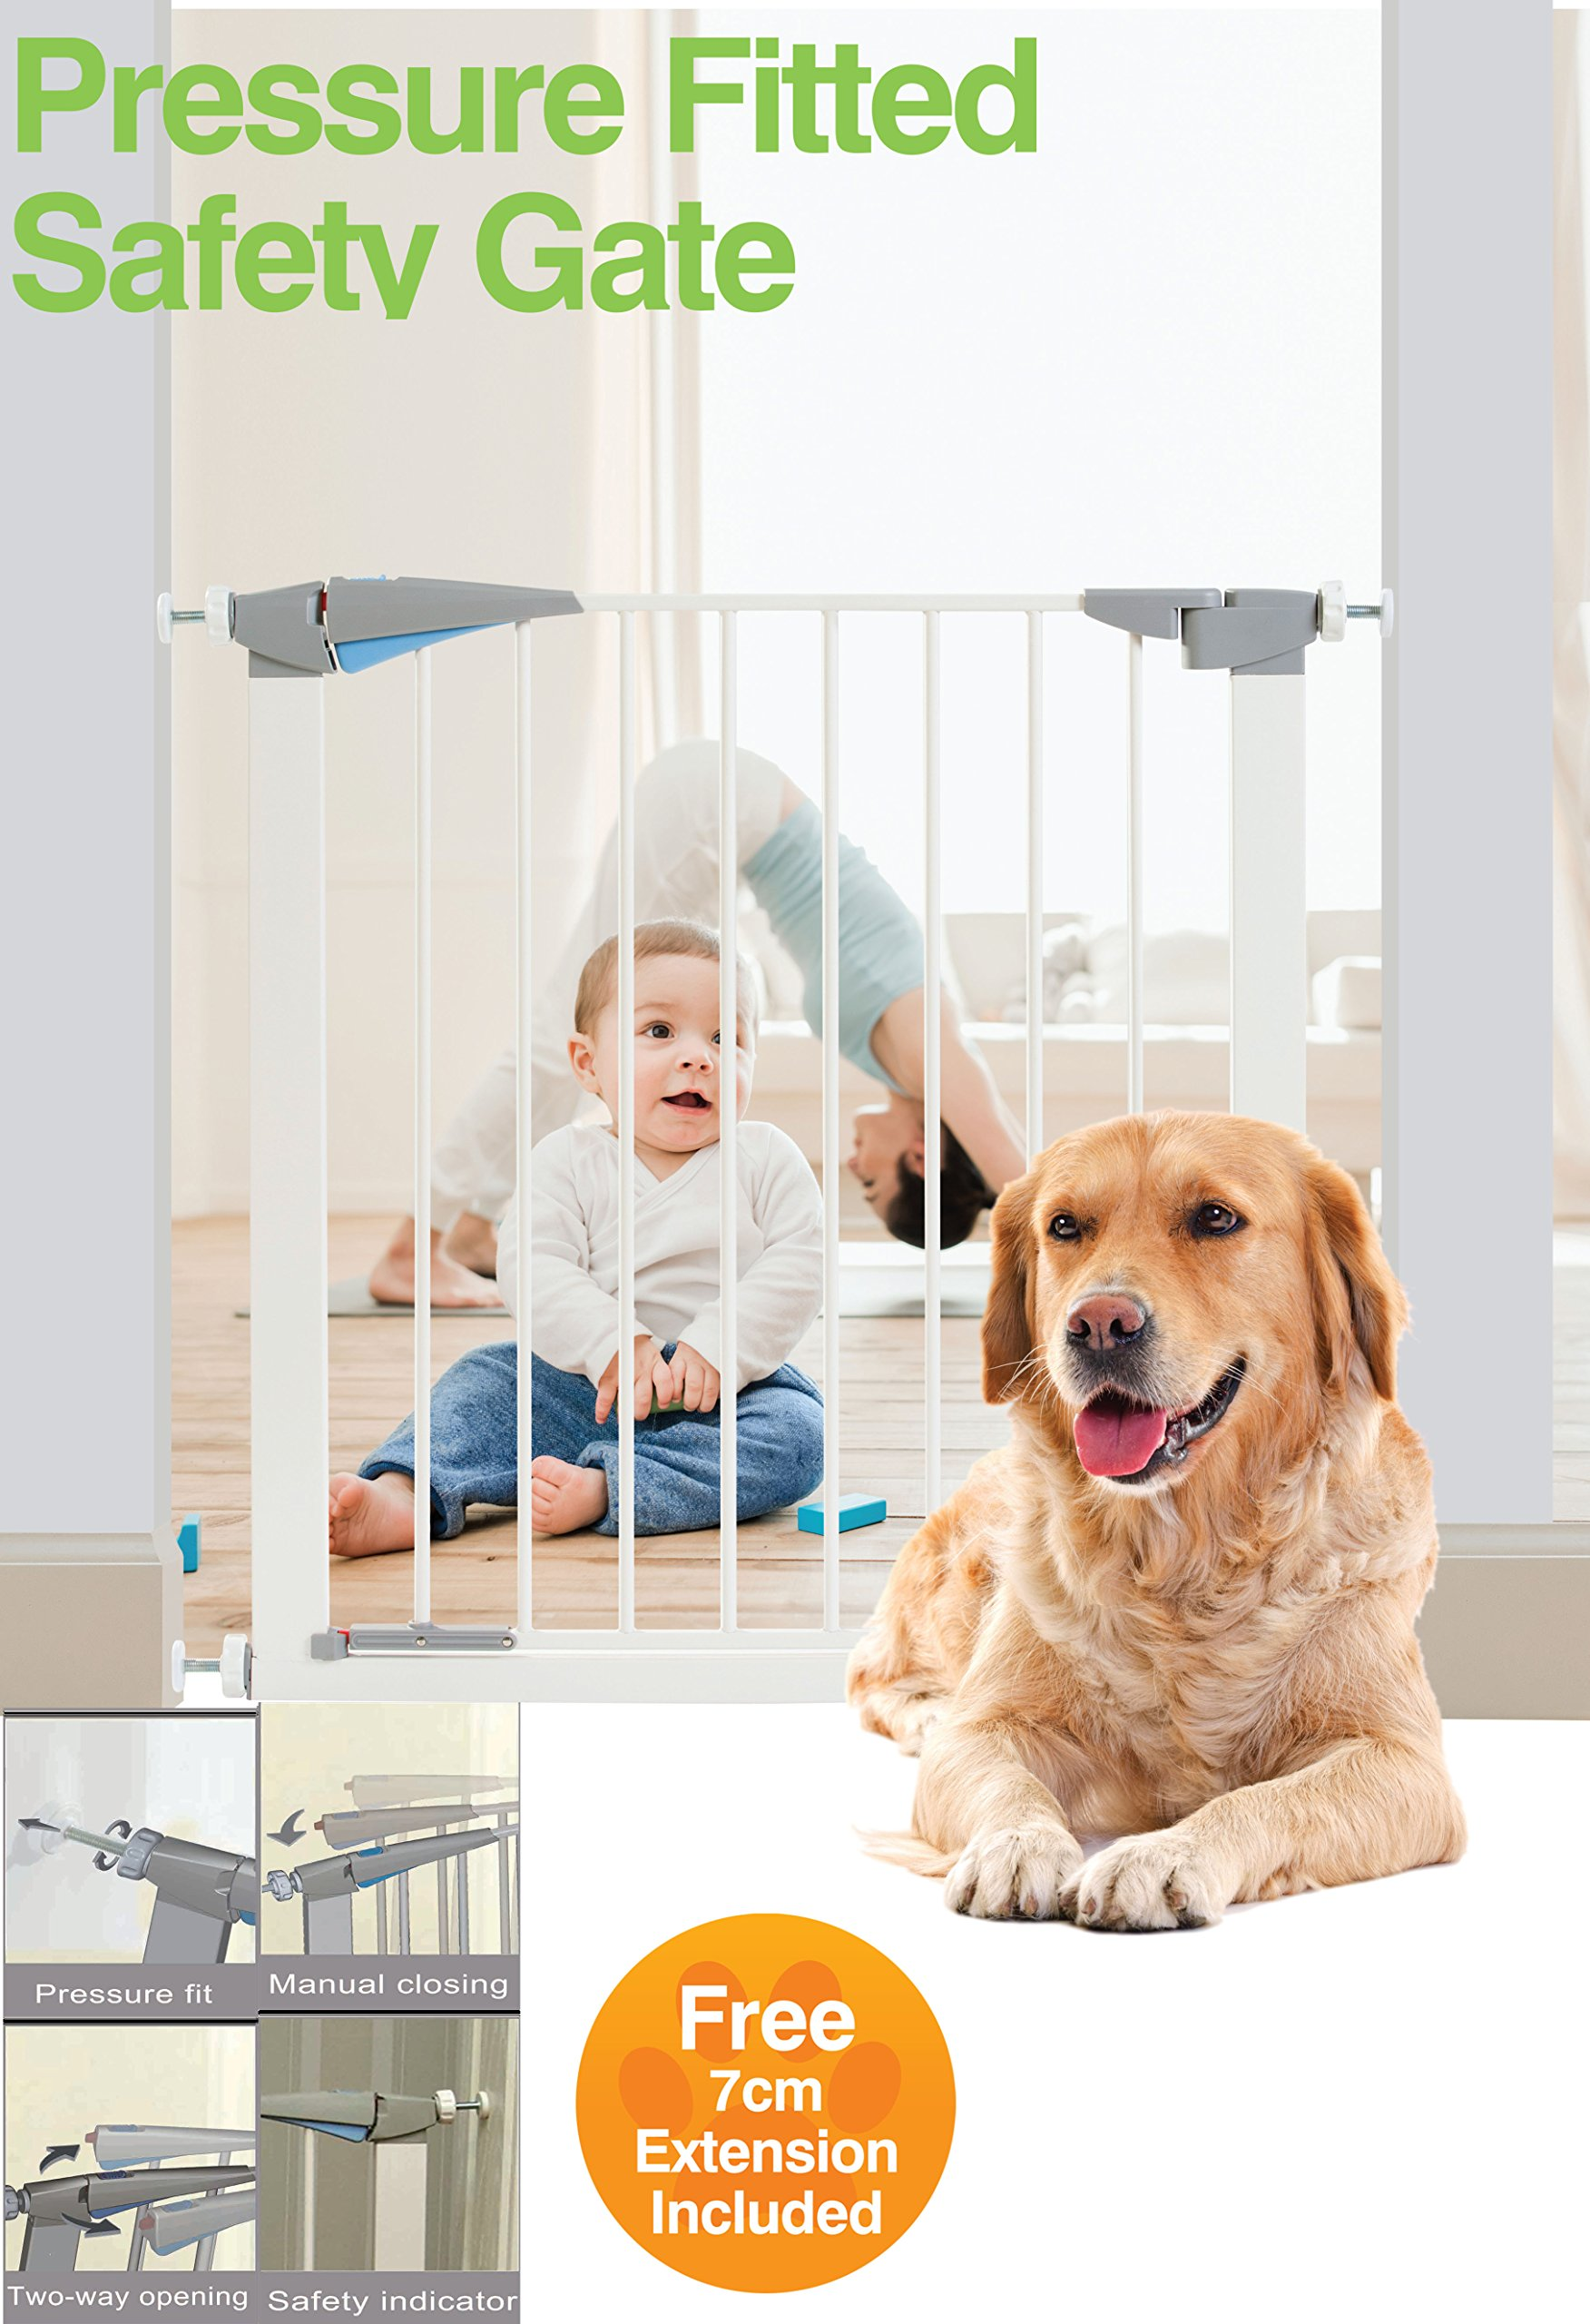 Pressure Fitted Pet and Baby Safety Stair Gate with Free 7 cm Extension Included (Standard)  Can be used on stairways and doorways Fits opening from 72cm-79cm wide approx Includes 7cm side extension for wider opening ( 86cm wide Approx) 1